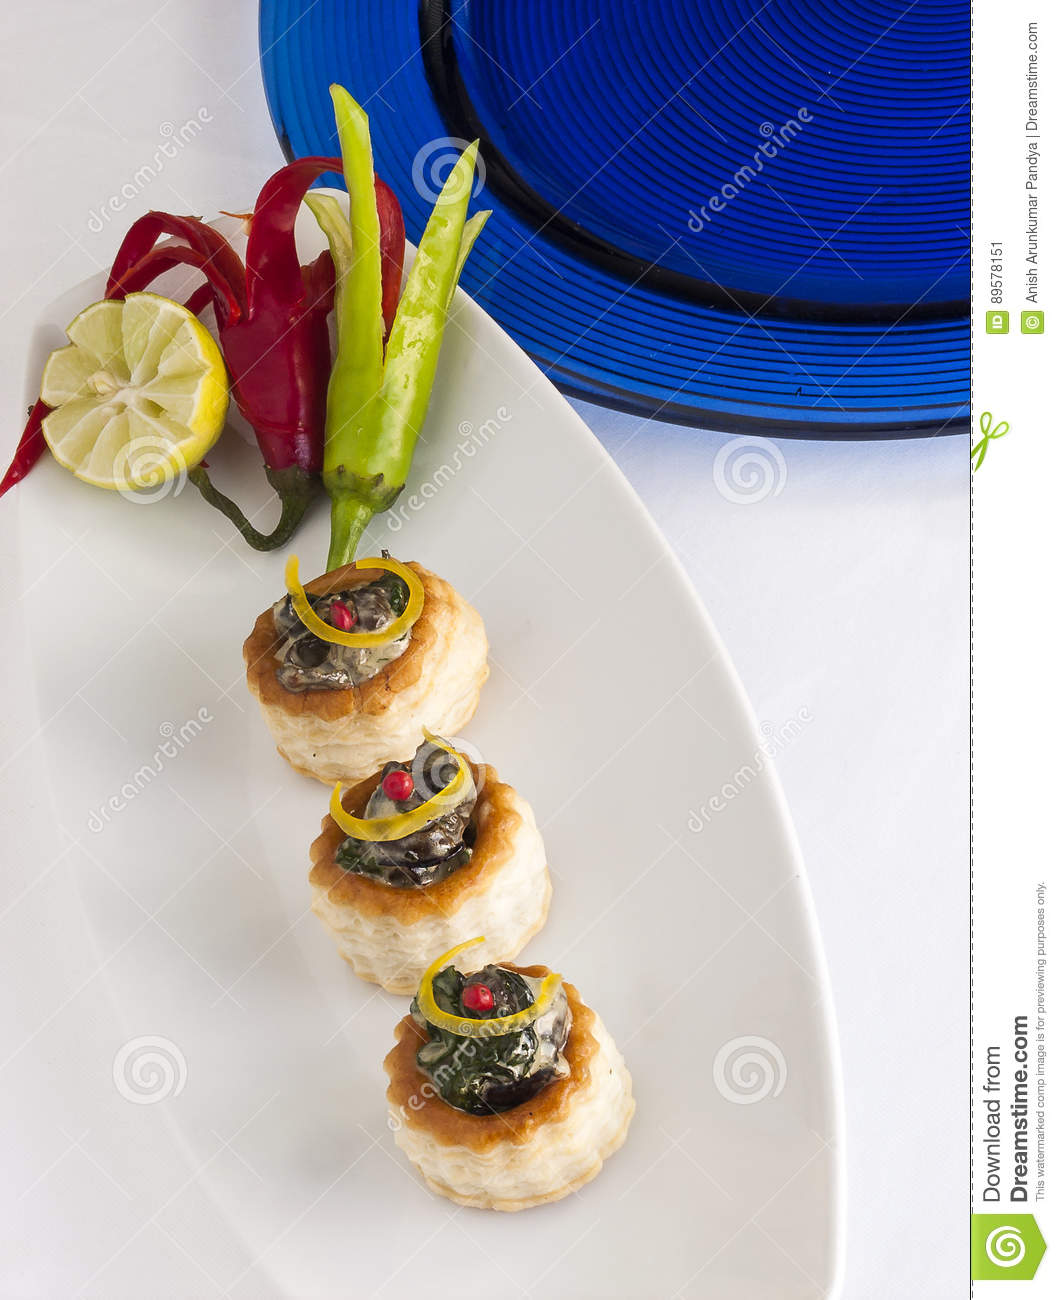 Creamy Spinach On Voulevant Stock Image Image Of Background Vent